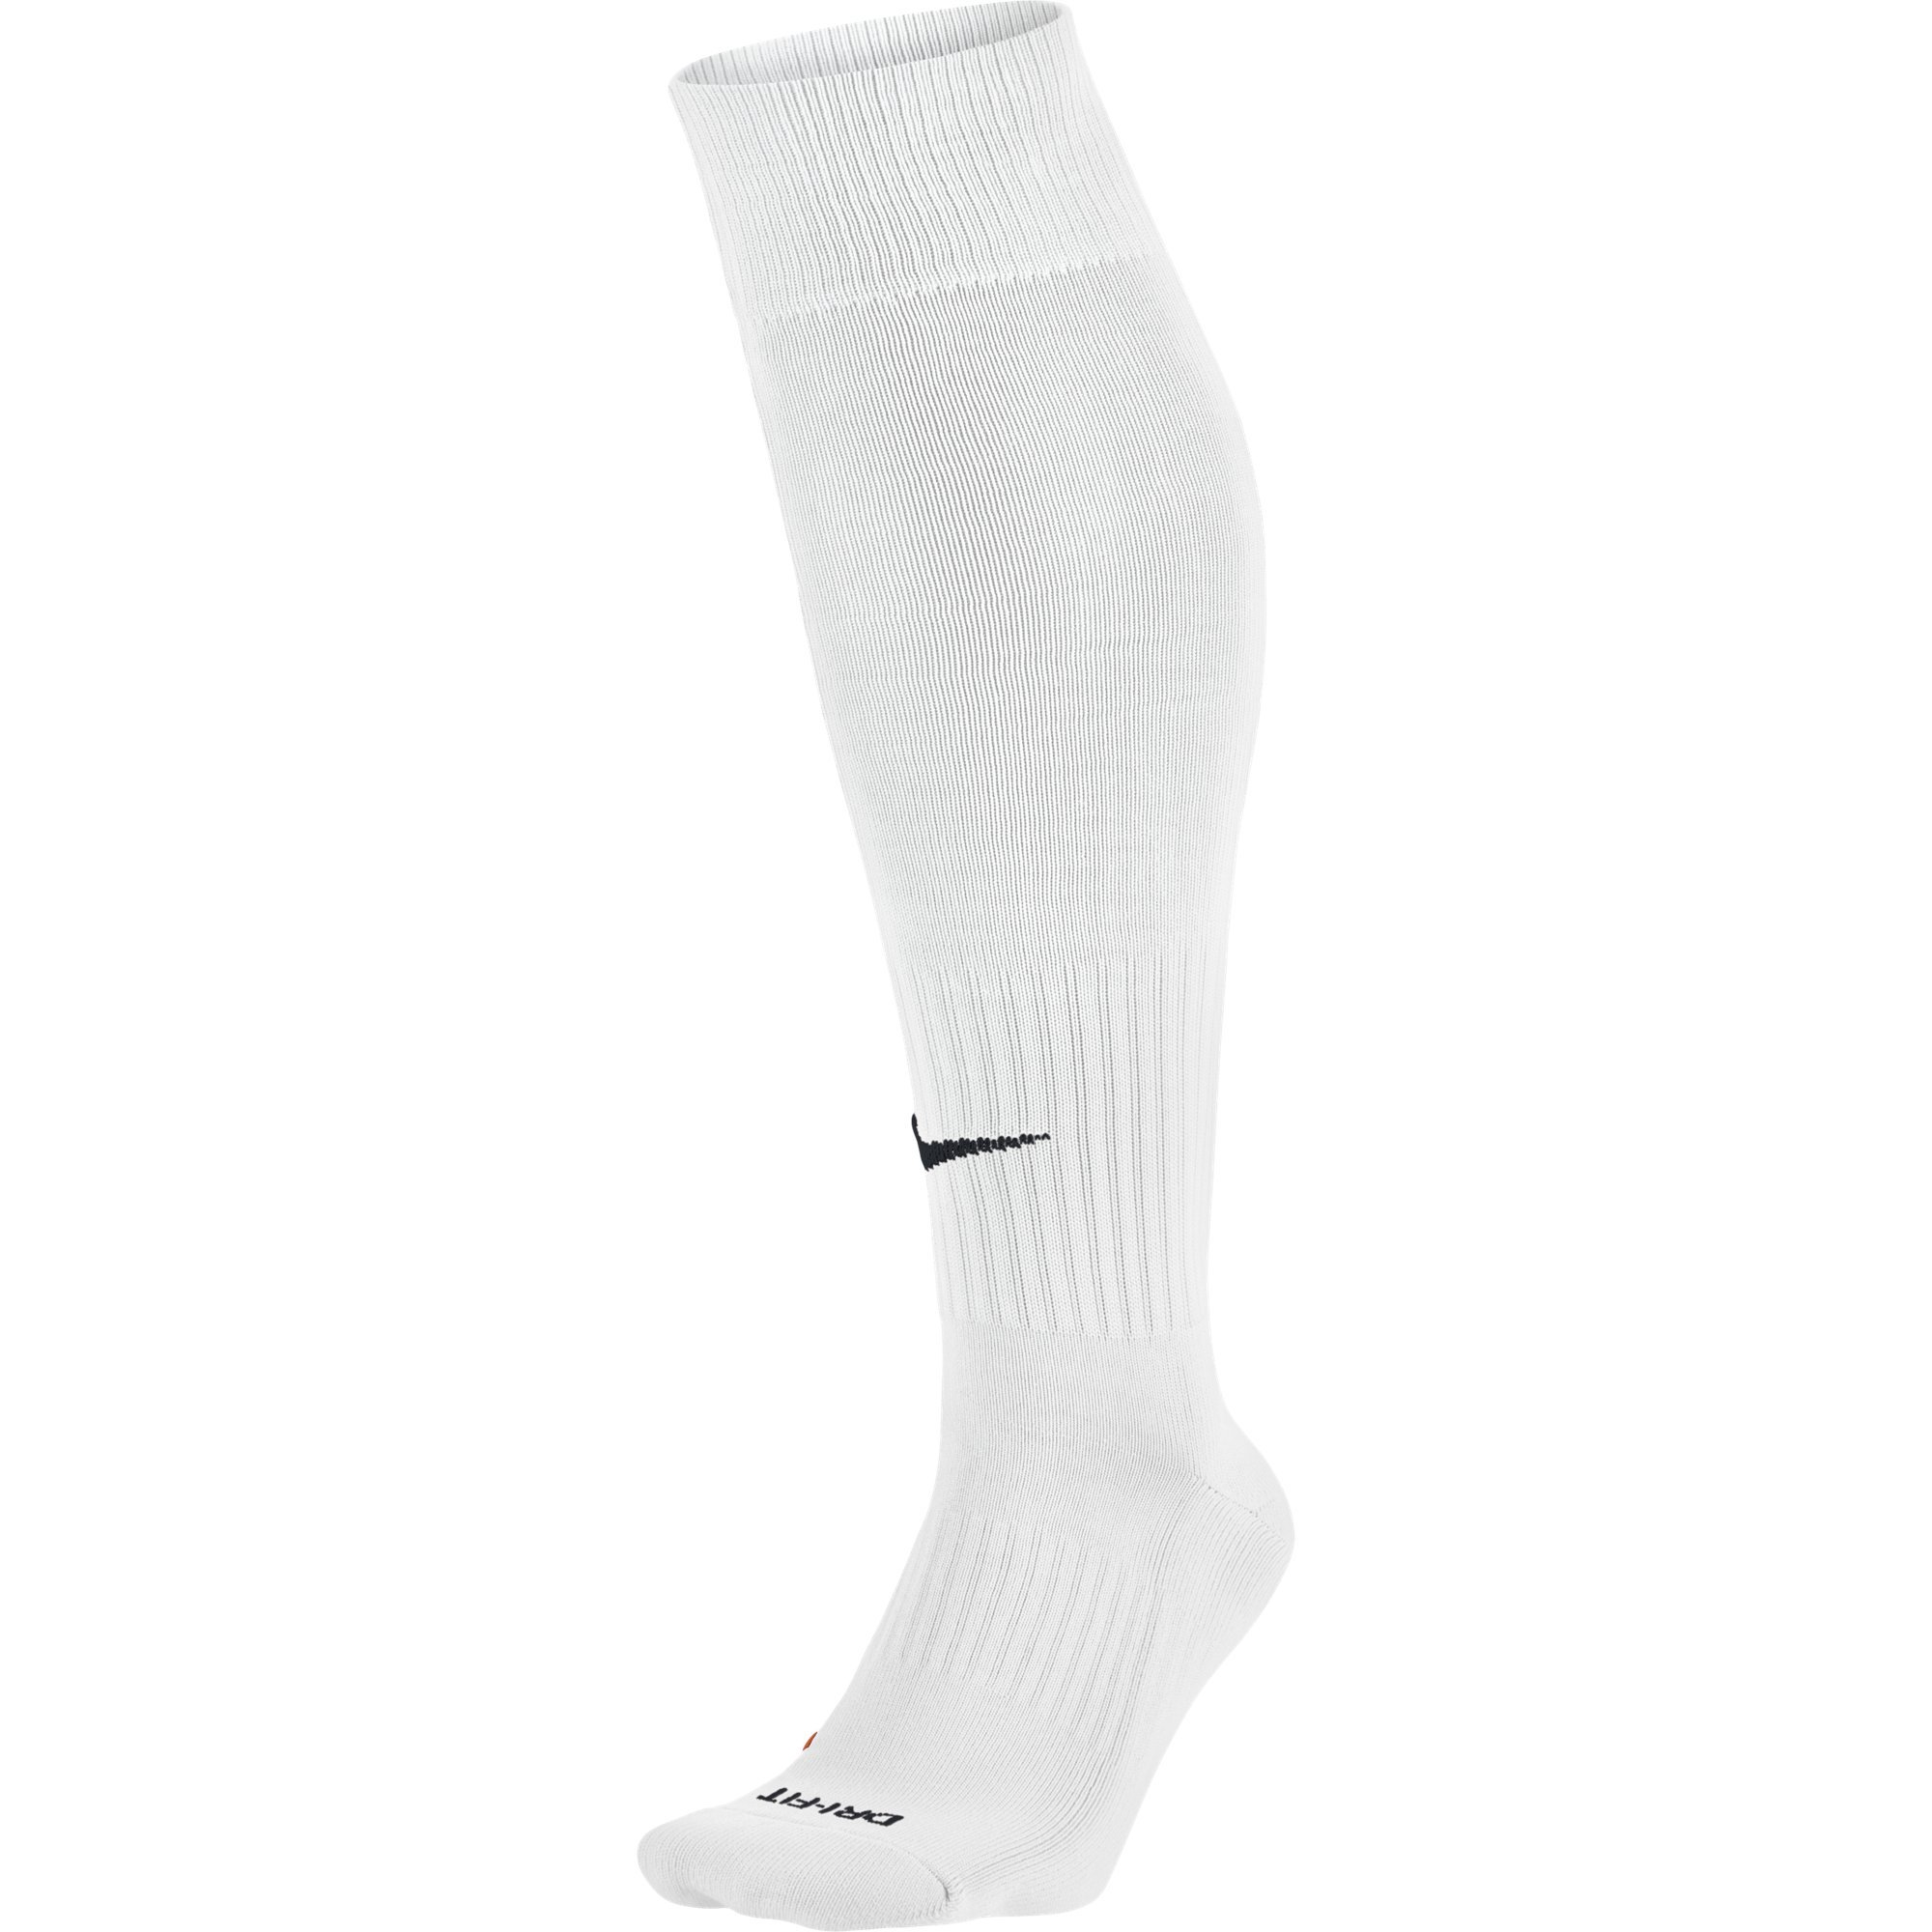 NIKE Unisex Academy Over-The-Calf Soccer Socks, White/Black, Large